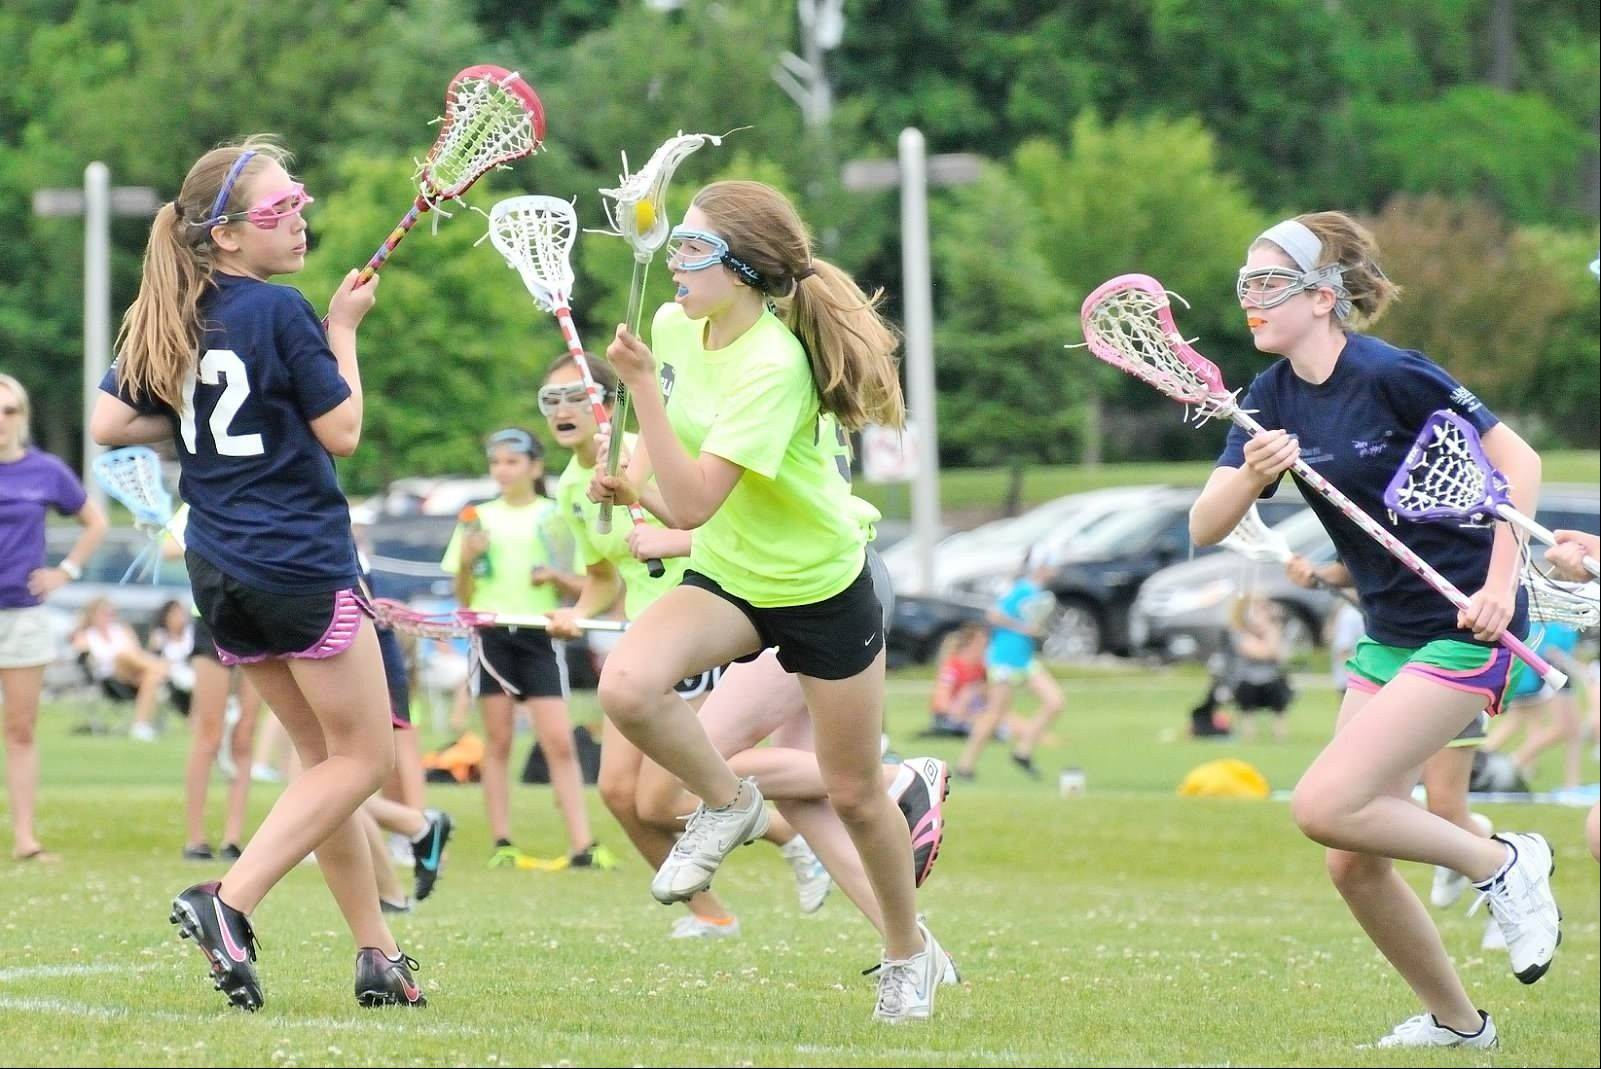 The Illinois Girls Lacrosse Association league begins Sept. 9. Register to participate through the Palatine Park District. For information, visit www.iglax.org.